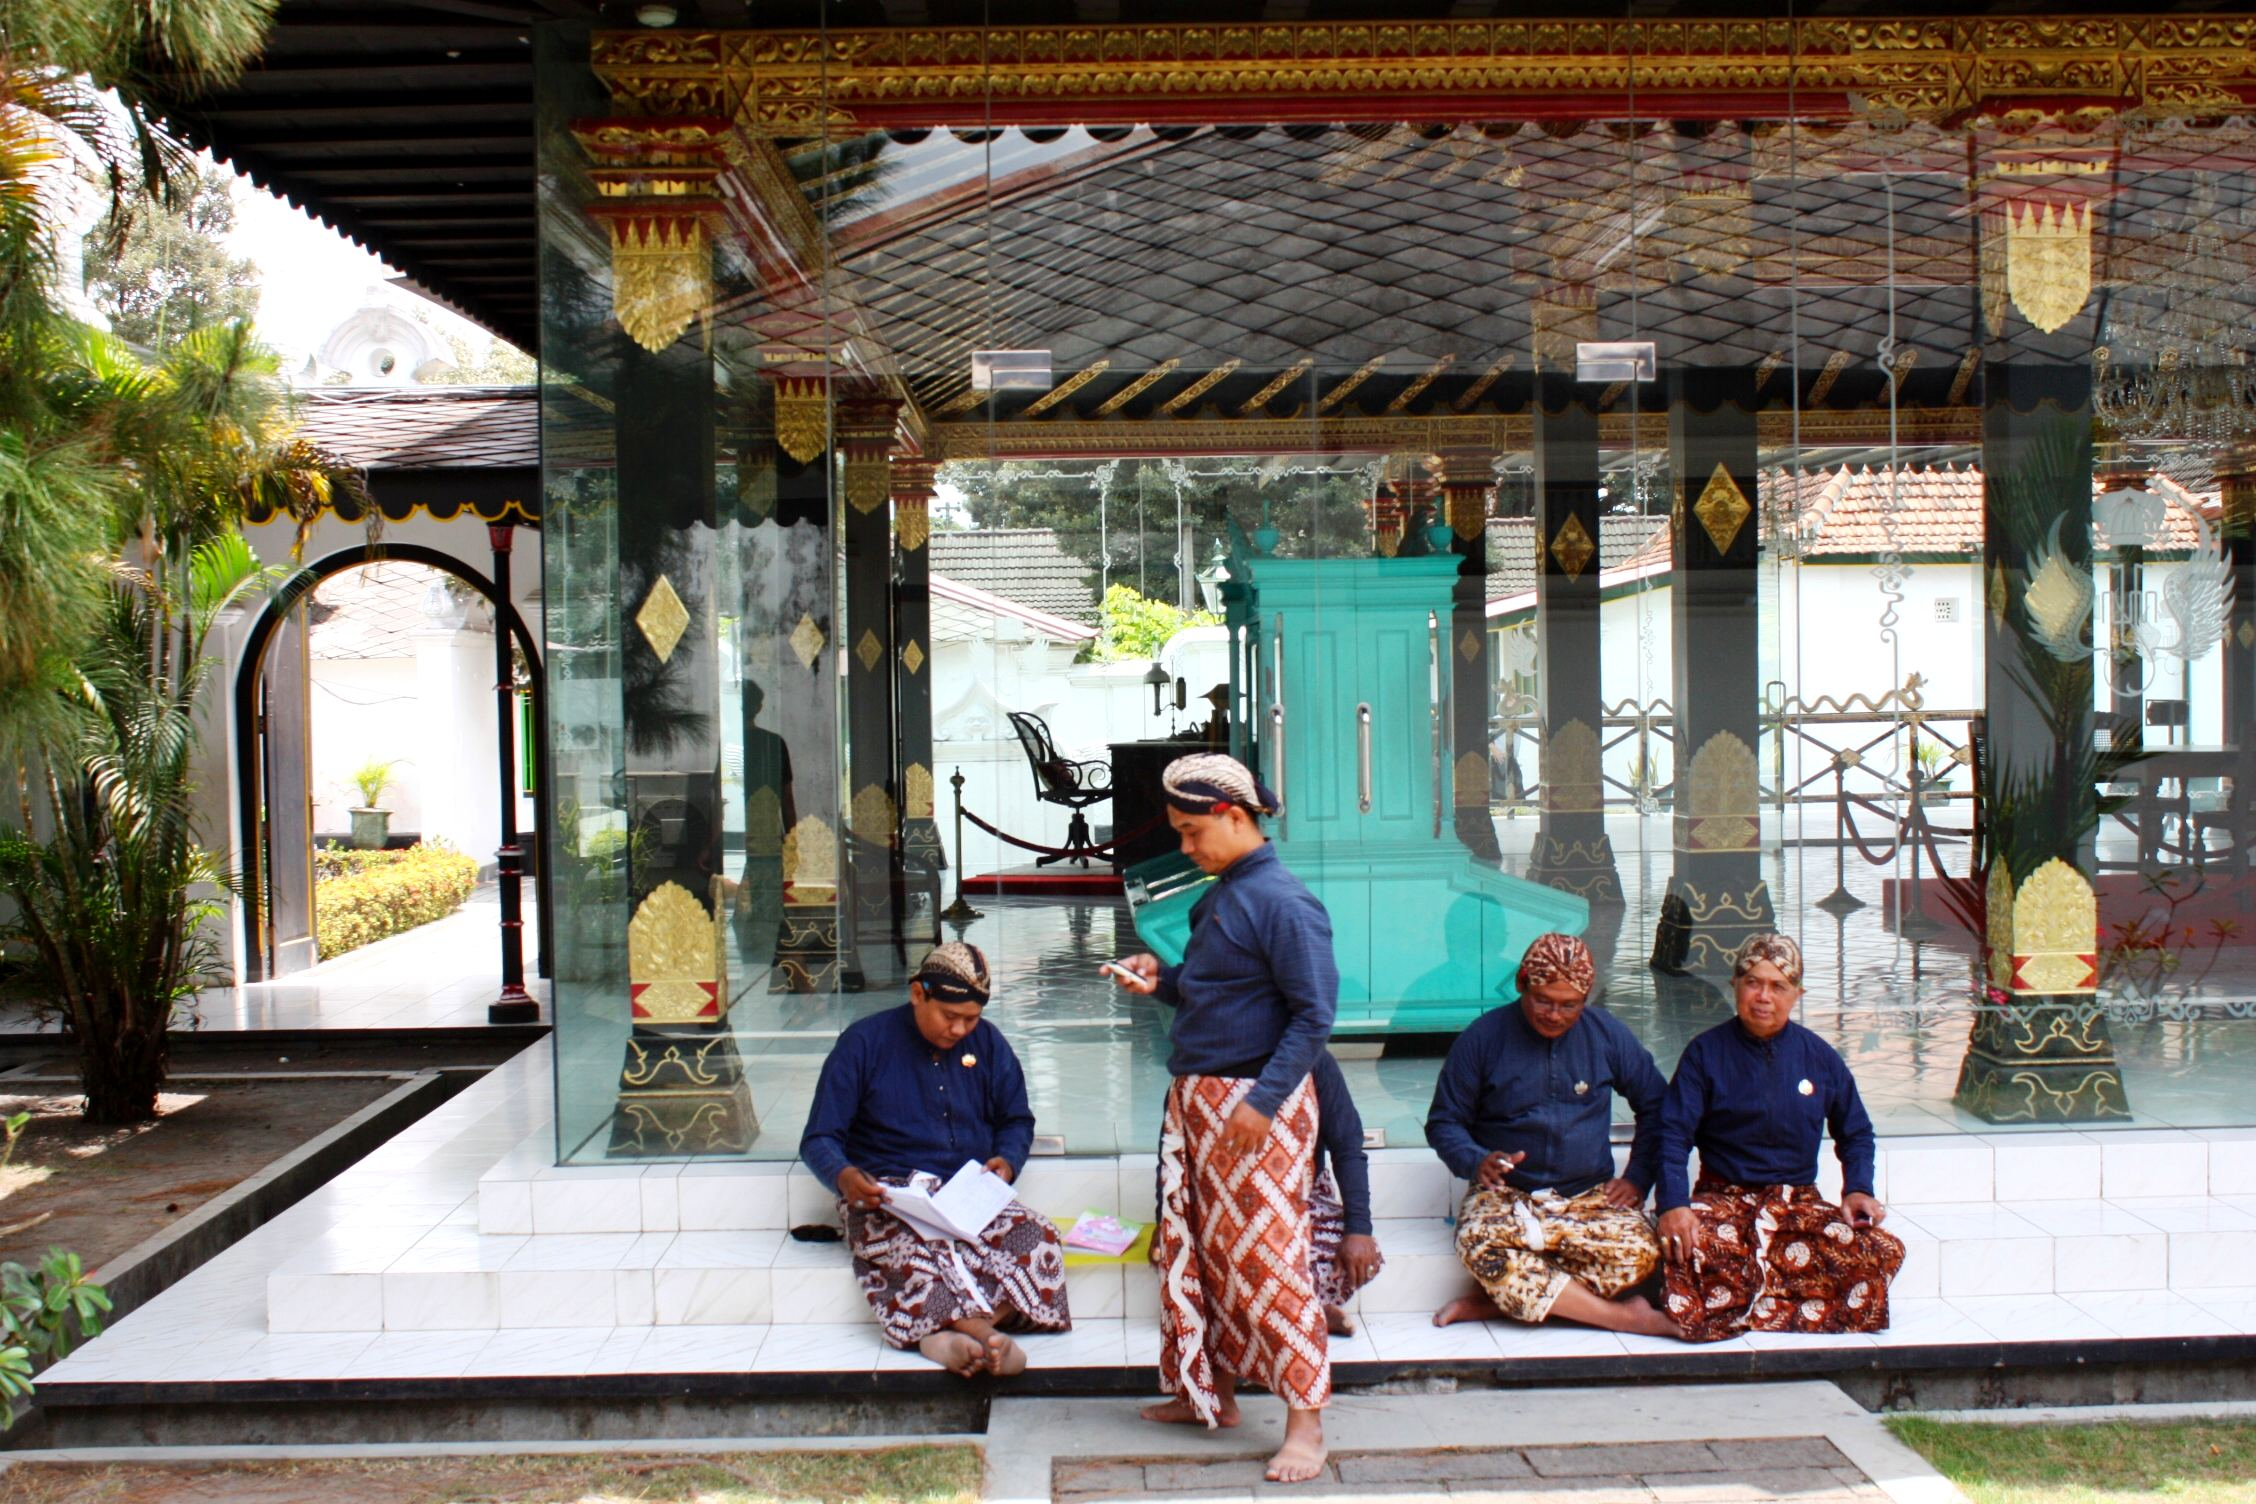 http://upload.wikimedia.org/wikipedia/commons/1/1c/DSC00440_Java_Kraton_Palace_Gardener_people_(6266212652).jpg